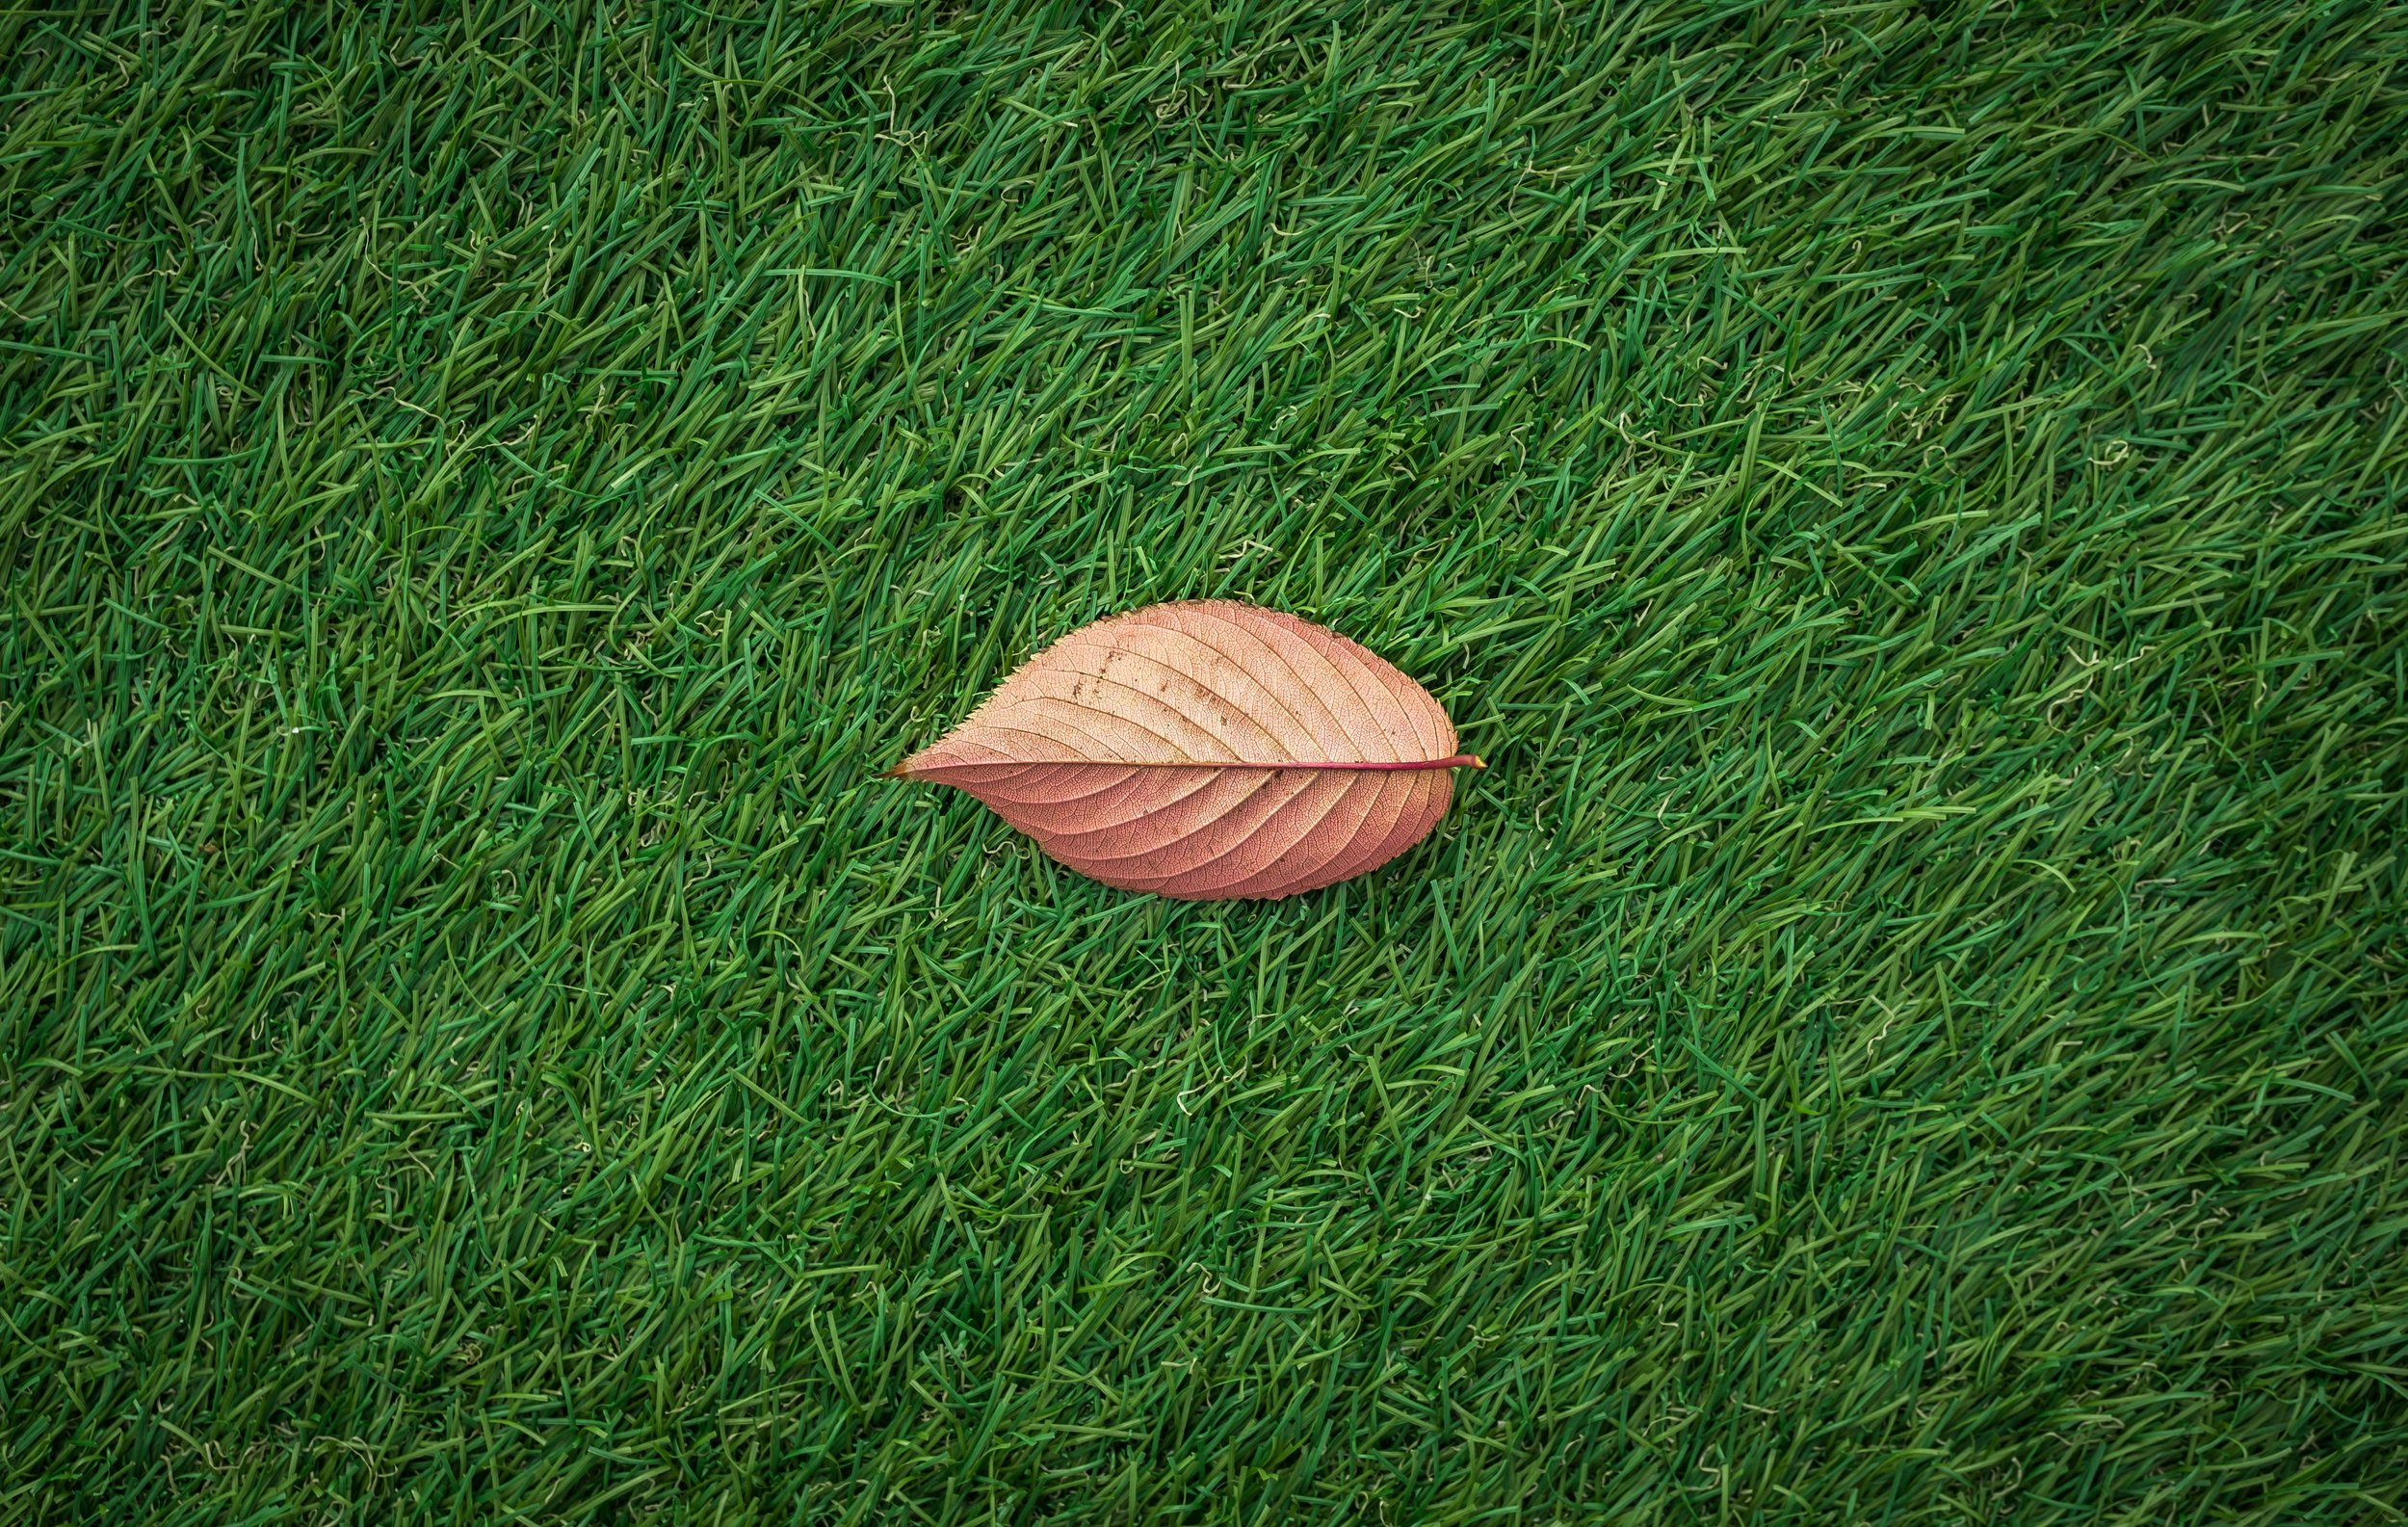 Grass with leaf.jpg